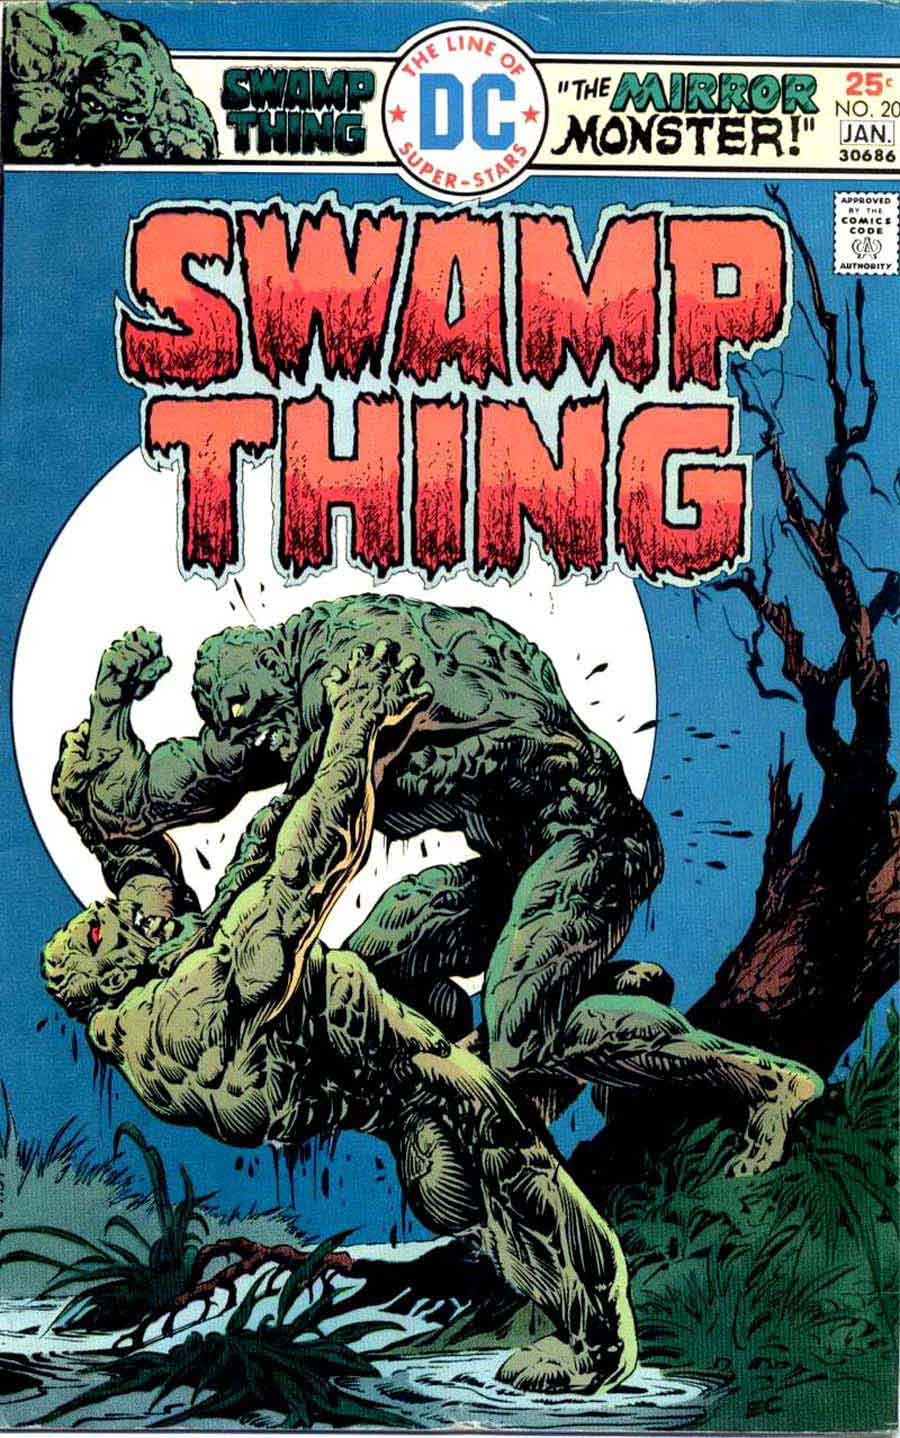 Swamp Thing v1 #20 1970s bronze age dc comic book cover art by Nestor Redondo